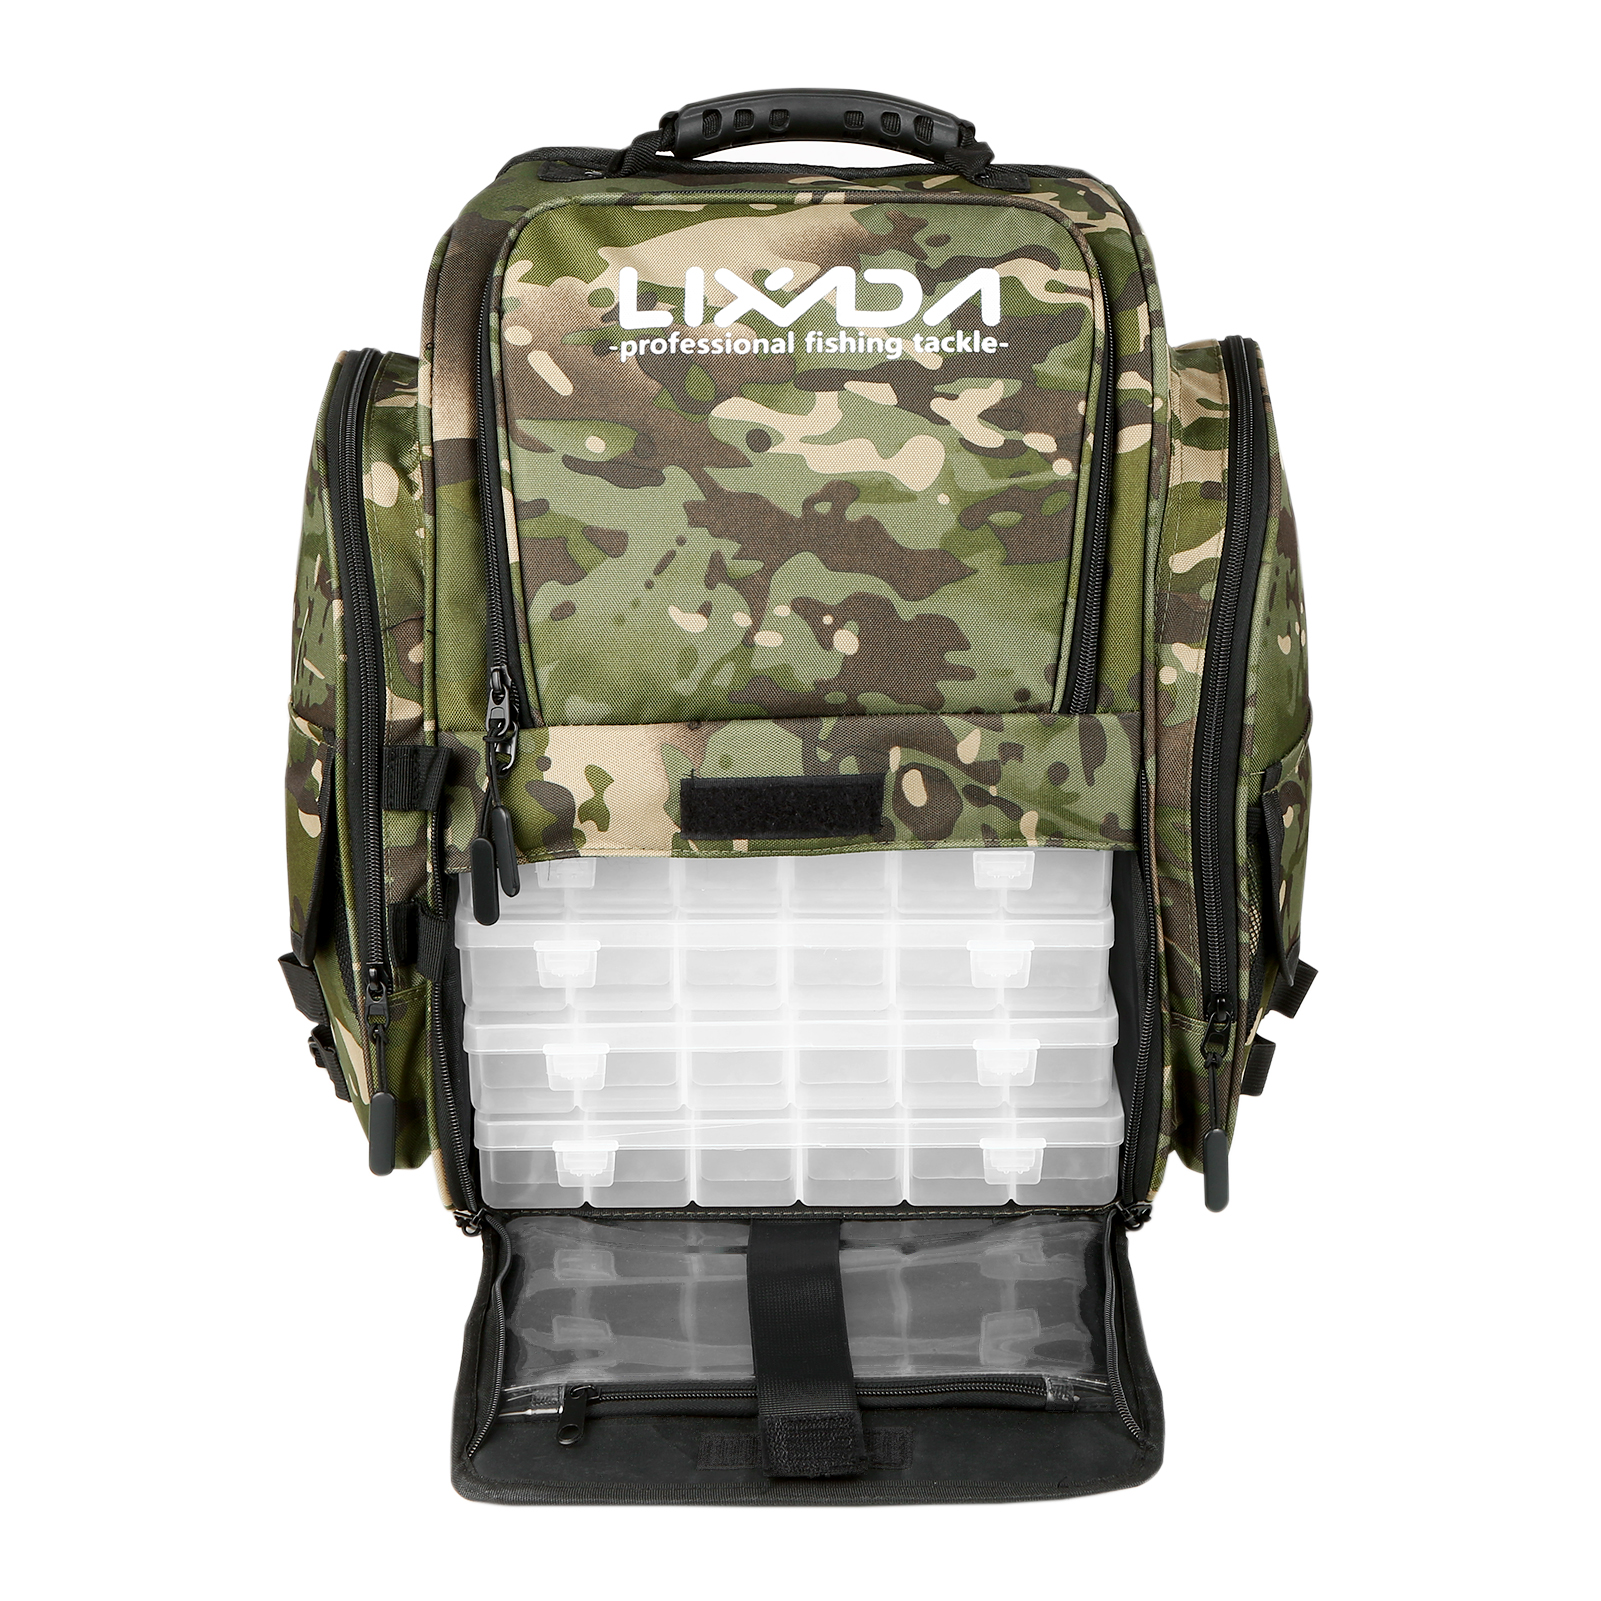 Fishing Tackle Backpack with 4 Trays Large Tackle Storage Bag with Rain Cover Outdoor Shoulder Backpack Fishing Gear Bag